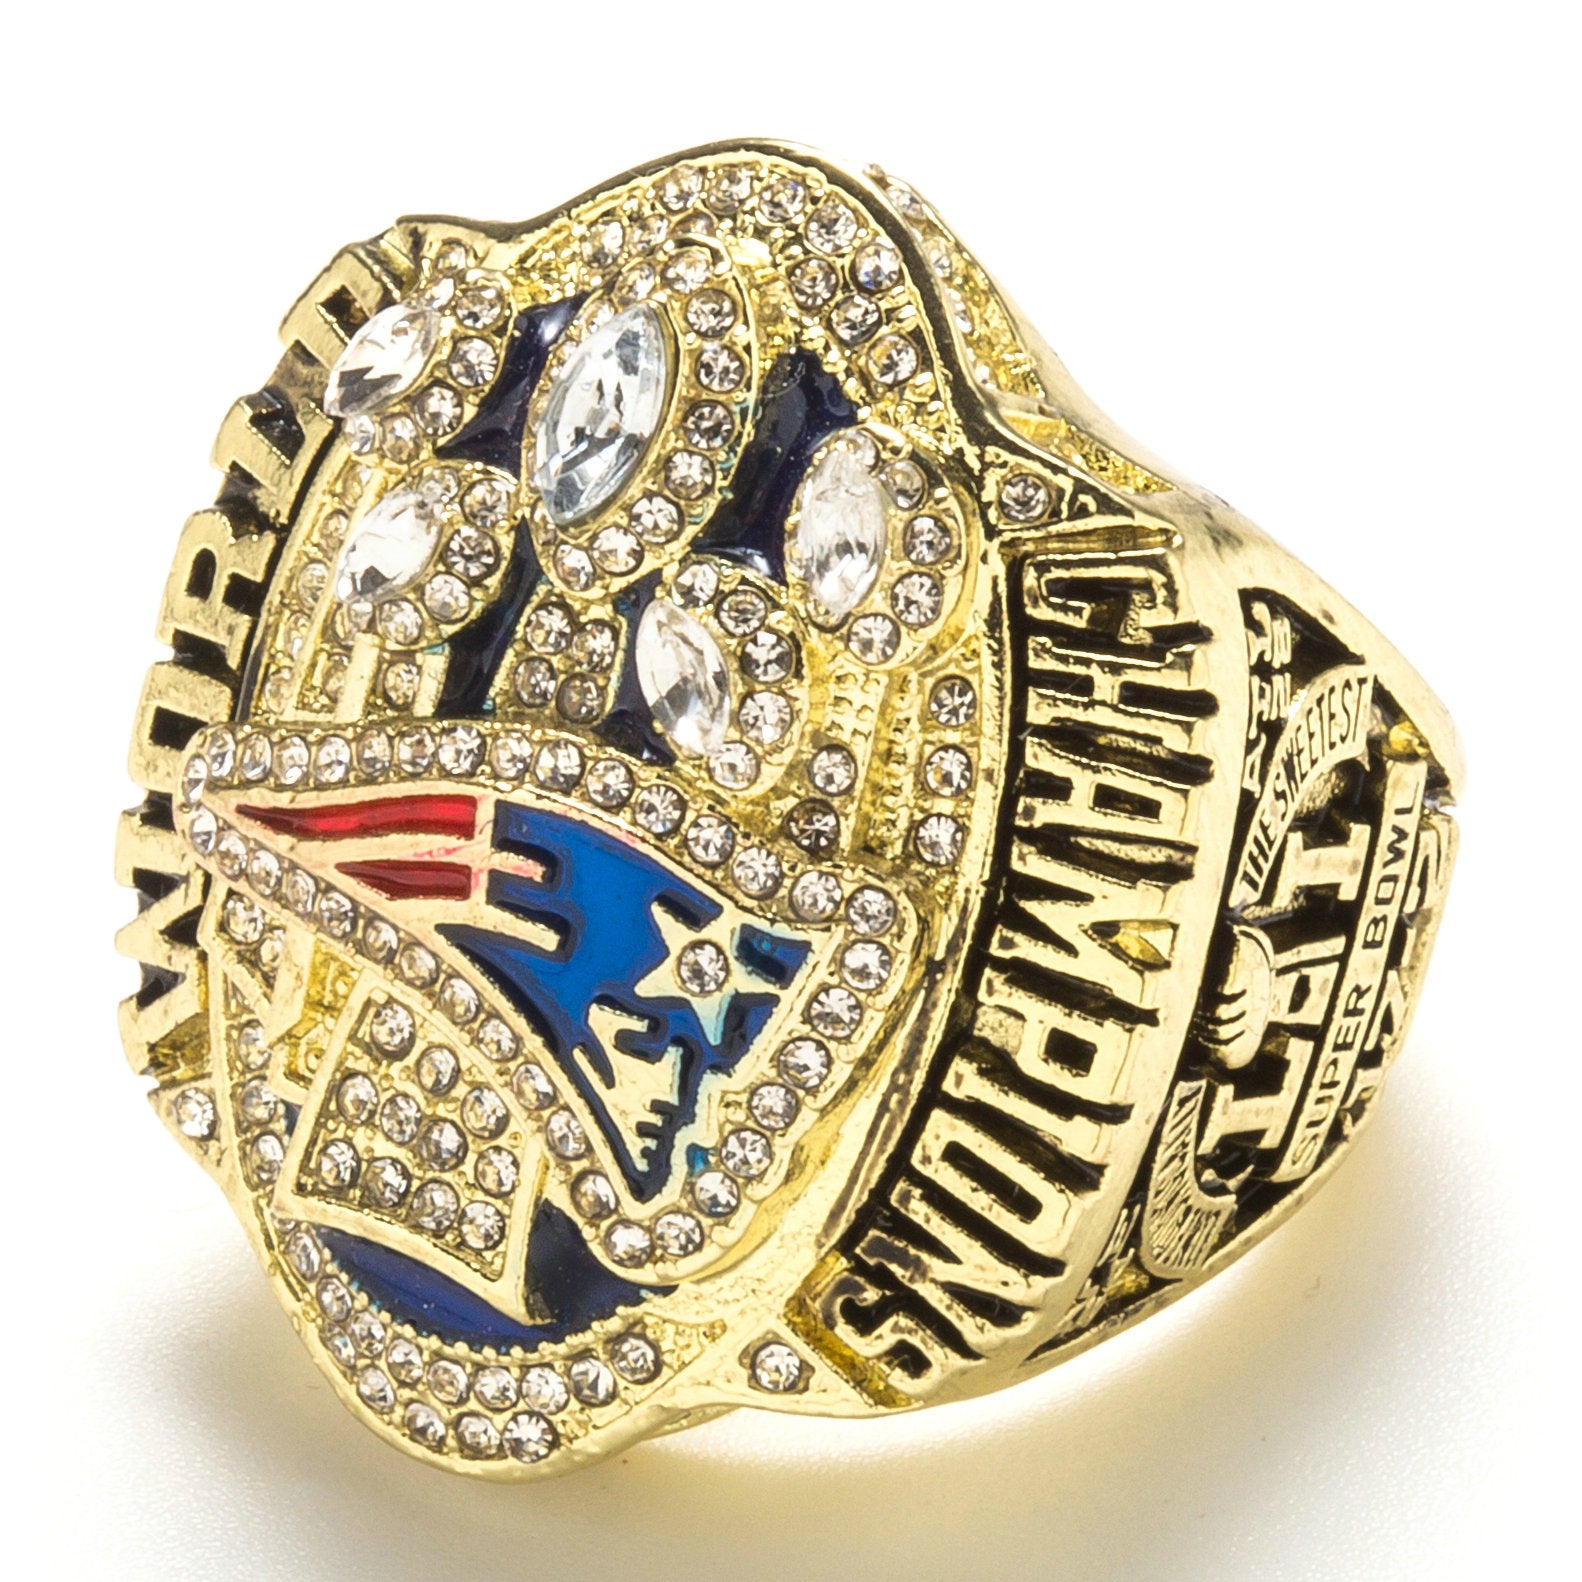 ring encrusted all gallery diamond glory in pictures of nfl rings sports super their bowl fox broncos